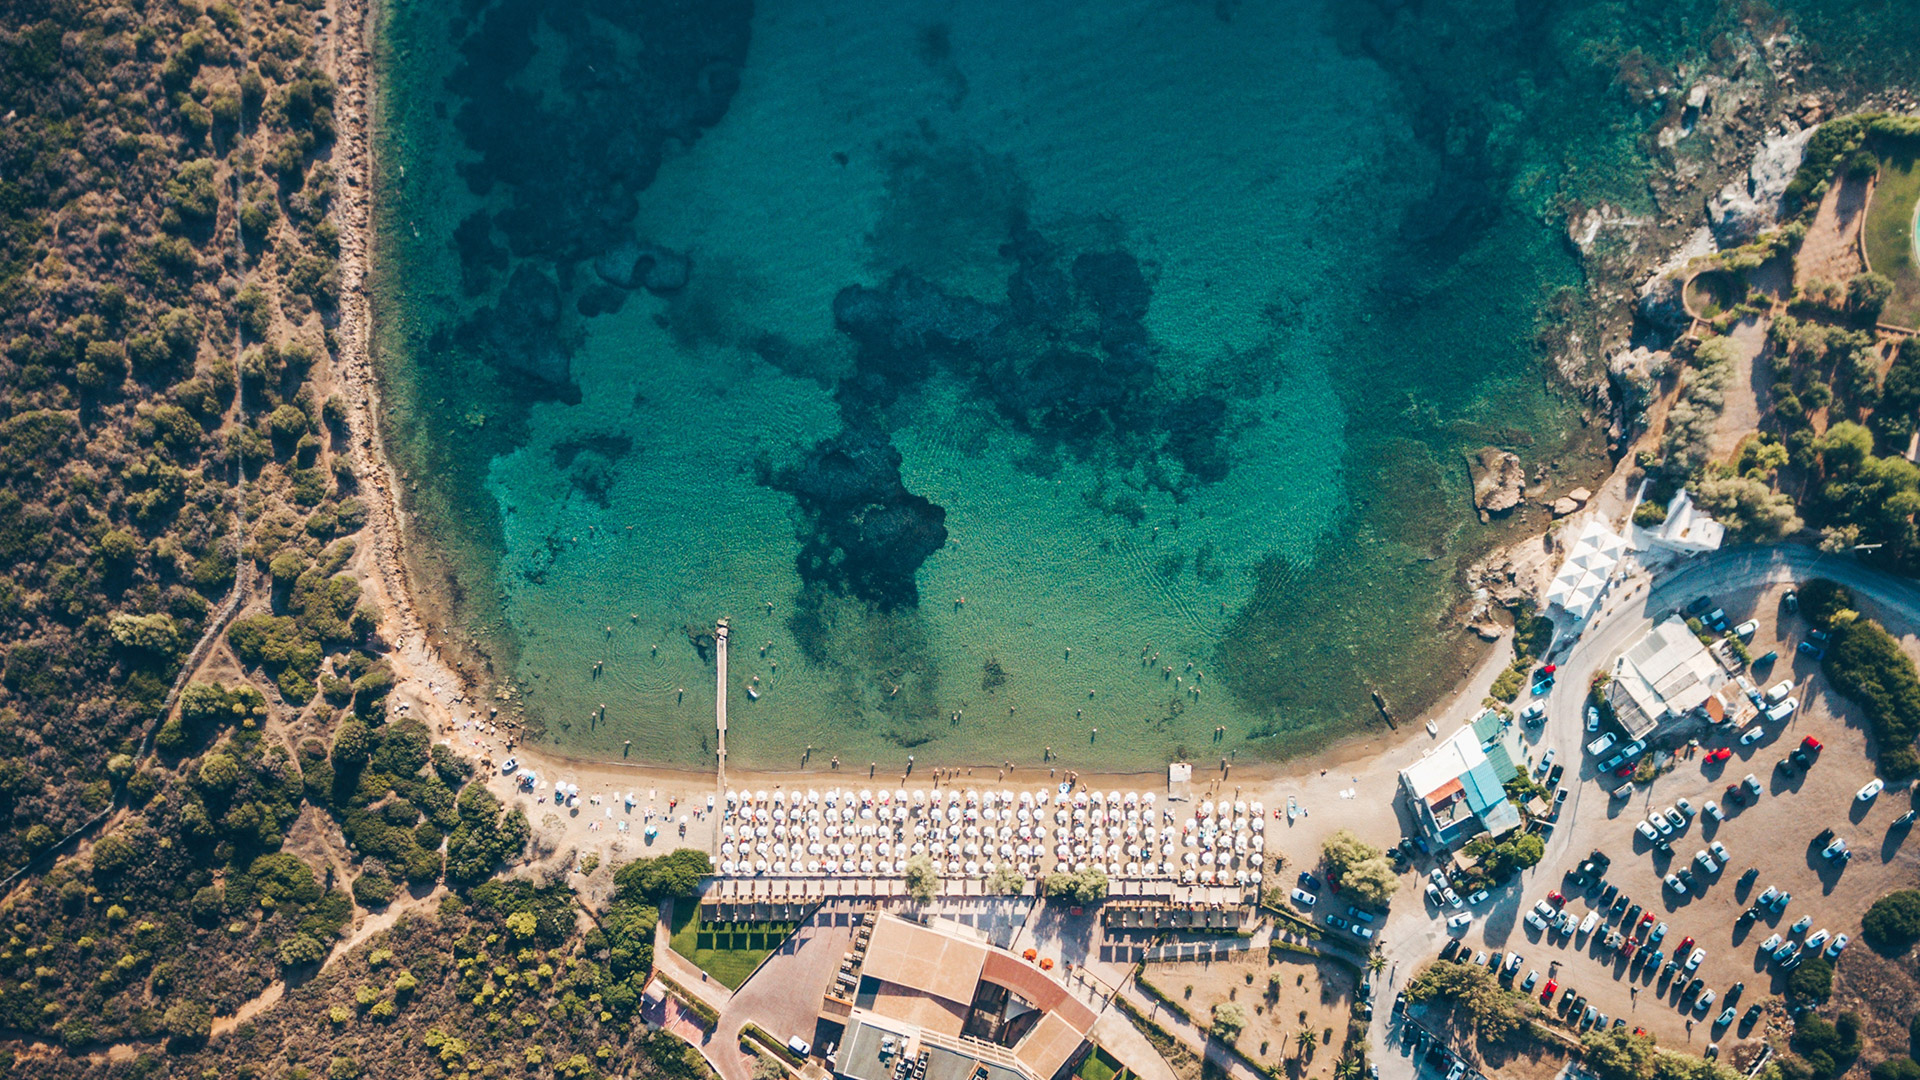 The beach at Sounion is well-organised, with facilities such as umbrellas and sunbeds, a beach bar and showers that make it perfect for families